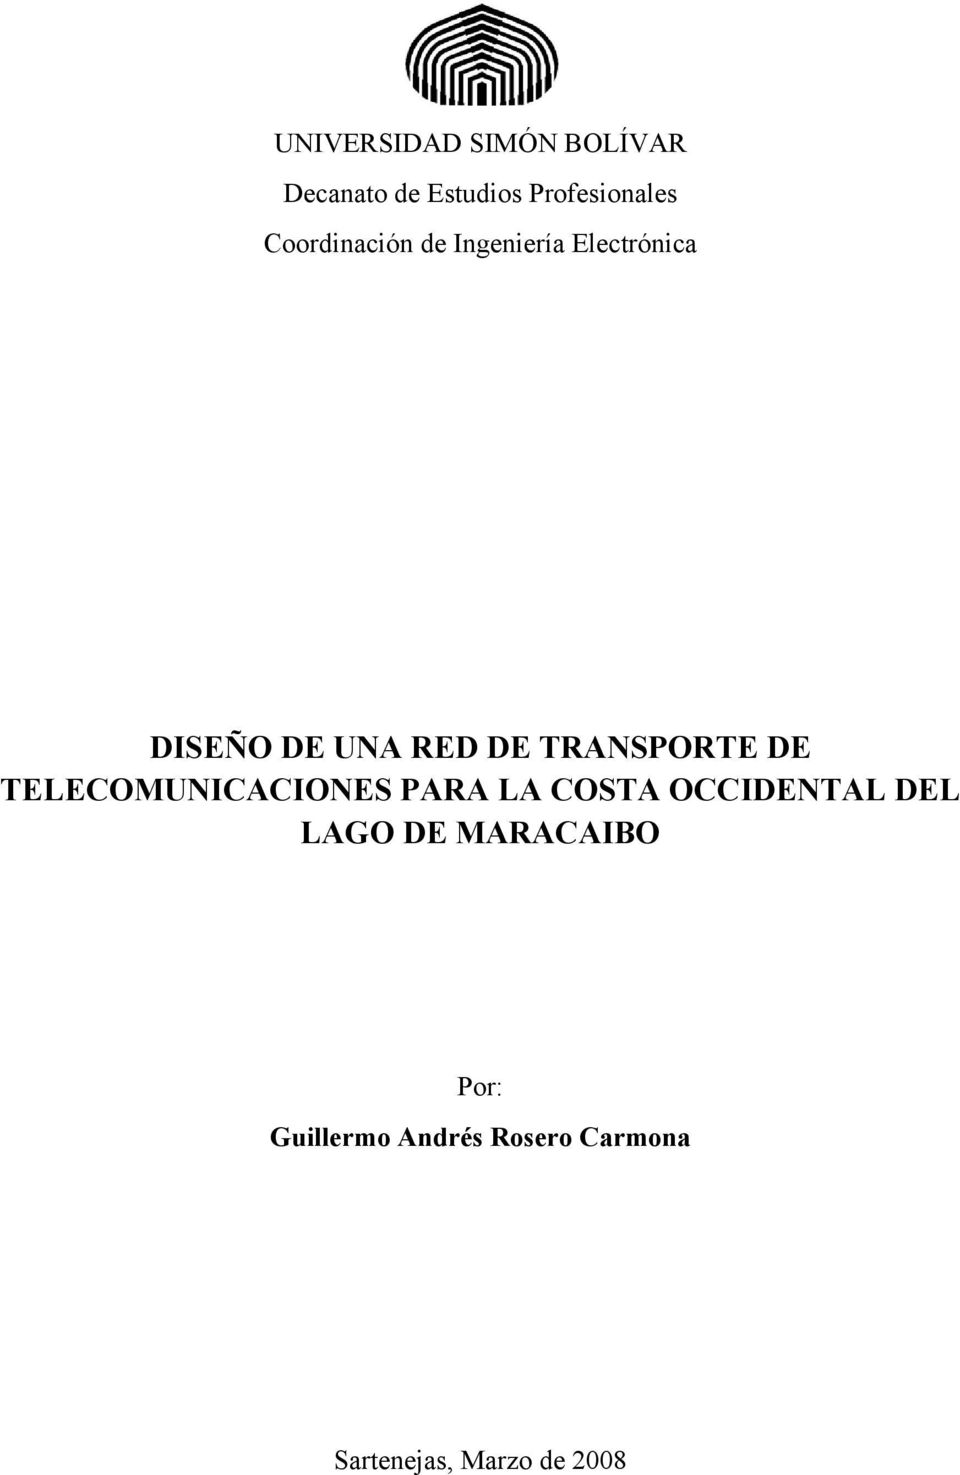 TRANSPORTE DE TELECOMUNICACIONES PARA LA COSTA OCCIDENTAL DEL